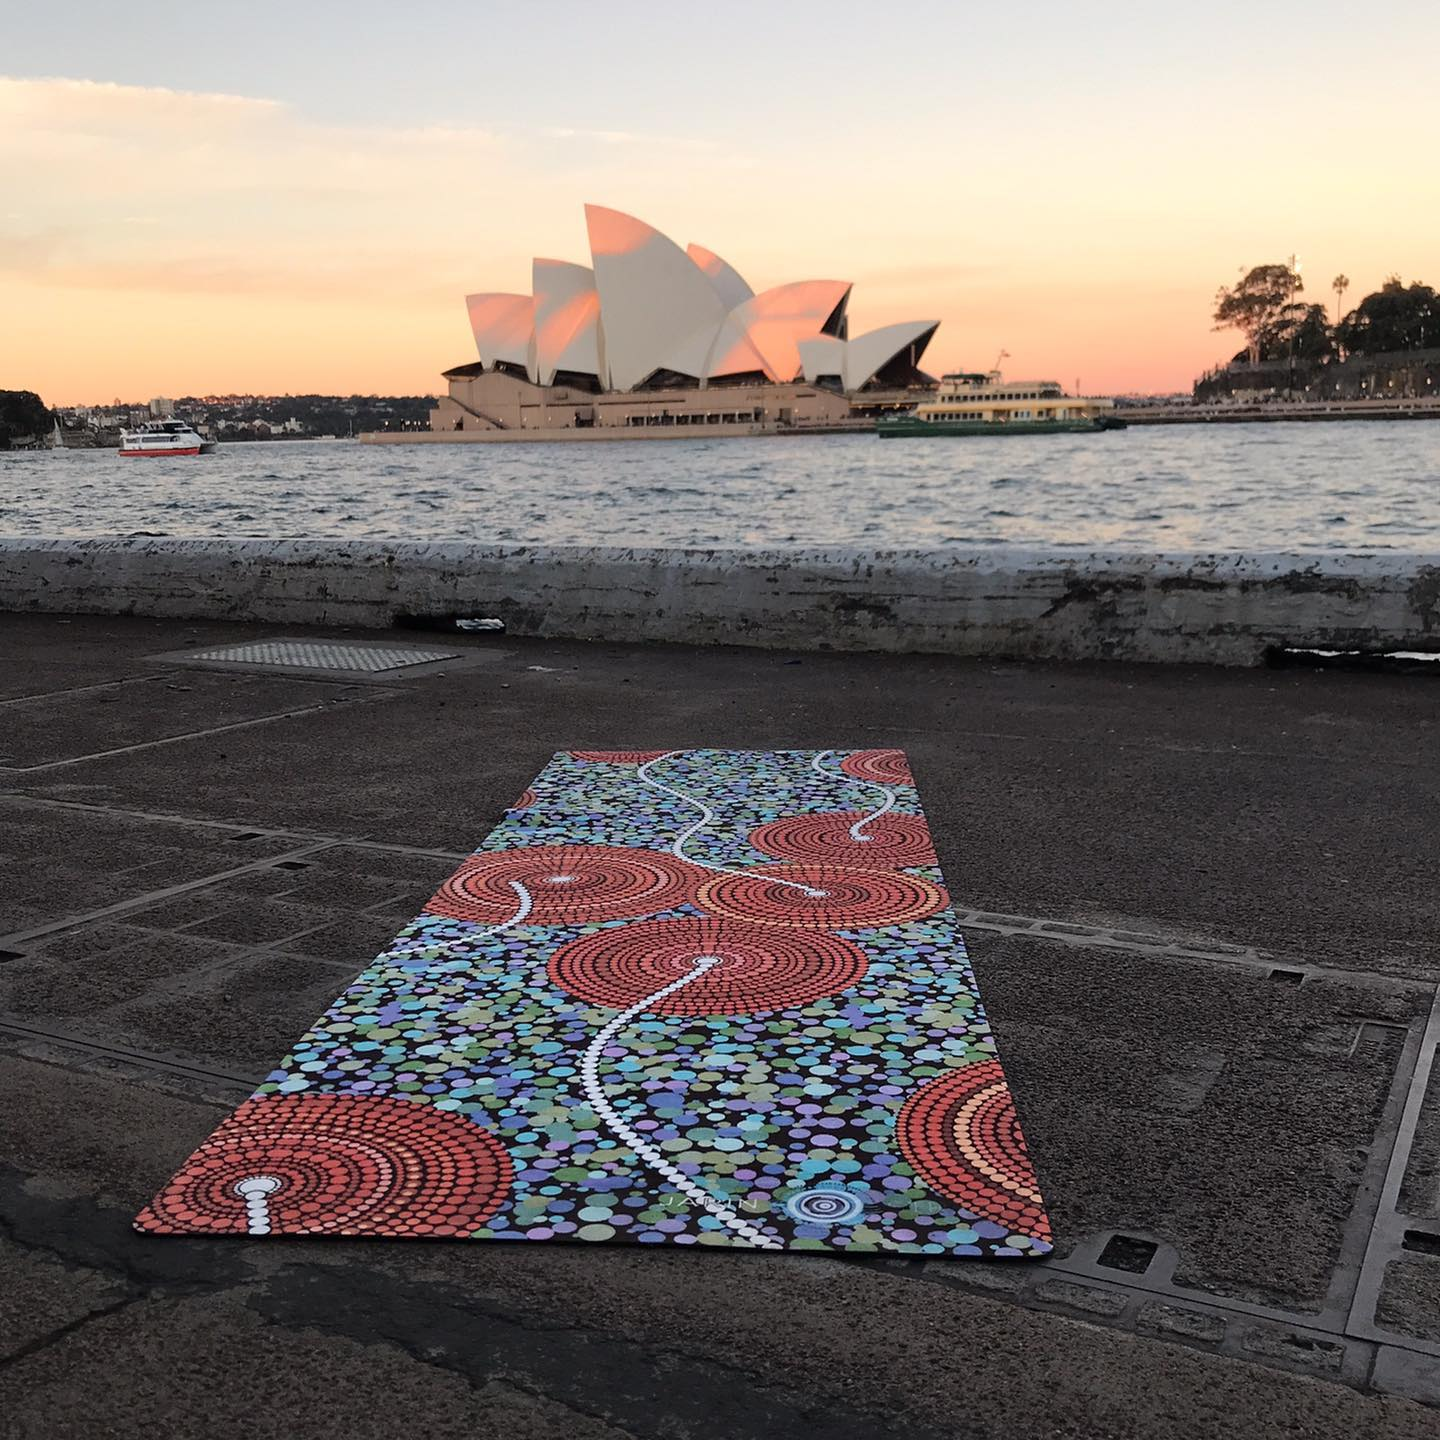 JARIN STREET - JARINSTREET.COM.AUJarin Street is a label focusing on accessible, wearable, usable and ethical Aboriginal art. Jarin Street supports up and coming Indigenous artists to get their designs out there and seen in everyday life through their exlusive yoga mats. All yoga mat designs are 100% authentic Aboriginal art.